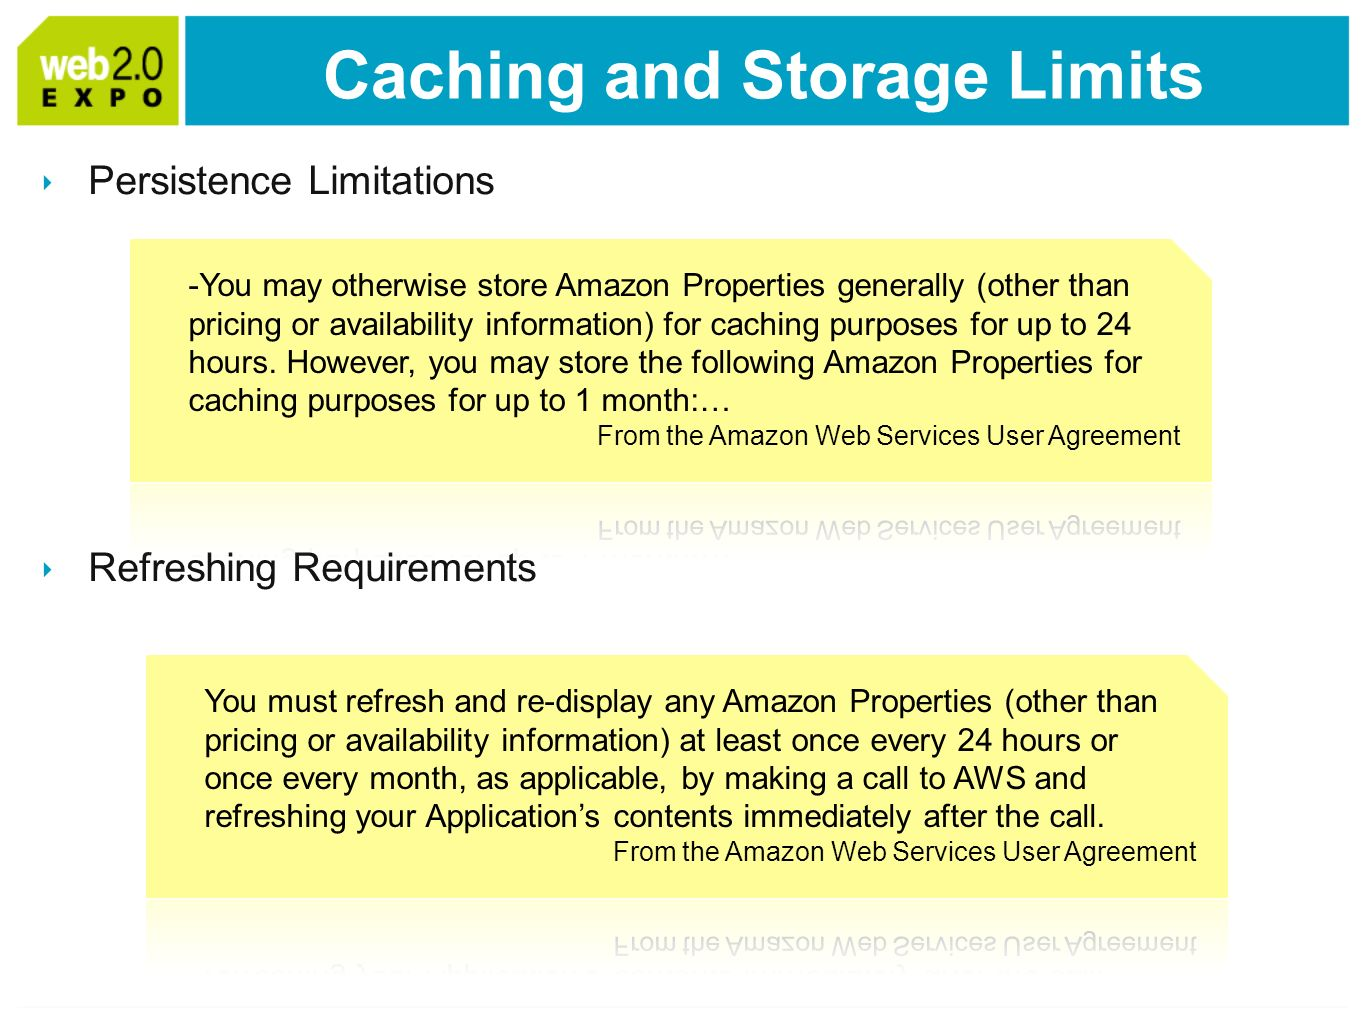 Persistence Limitations Refreshing Requirements Caching and Storage Limits